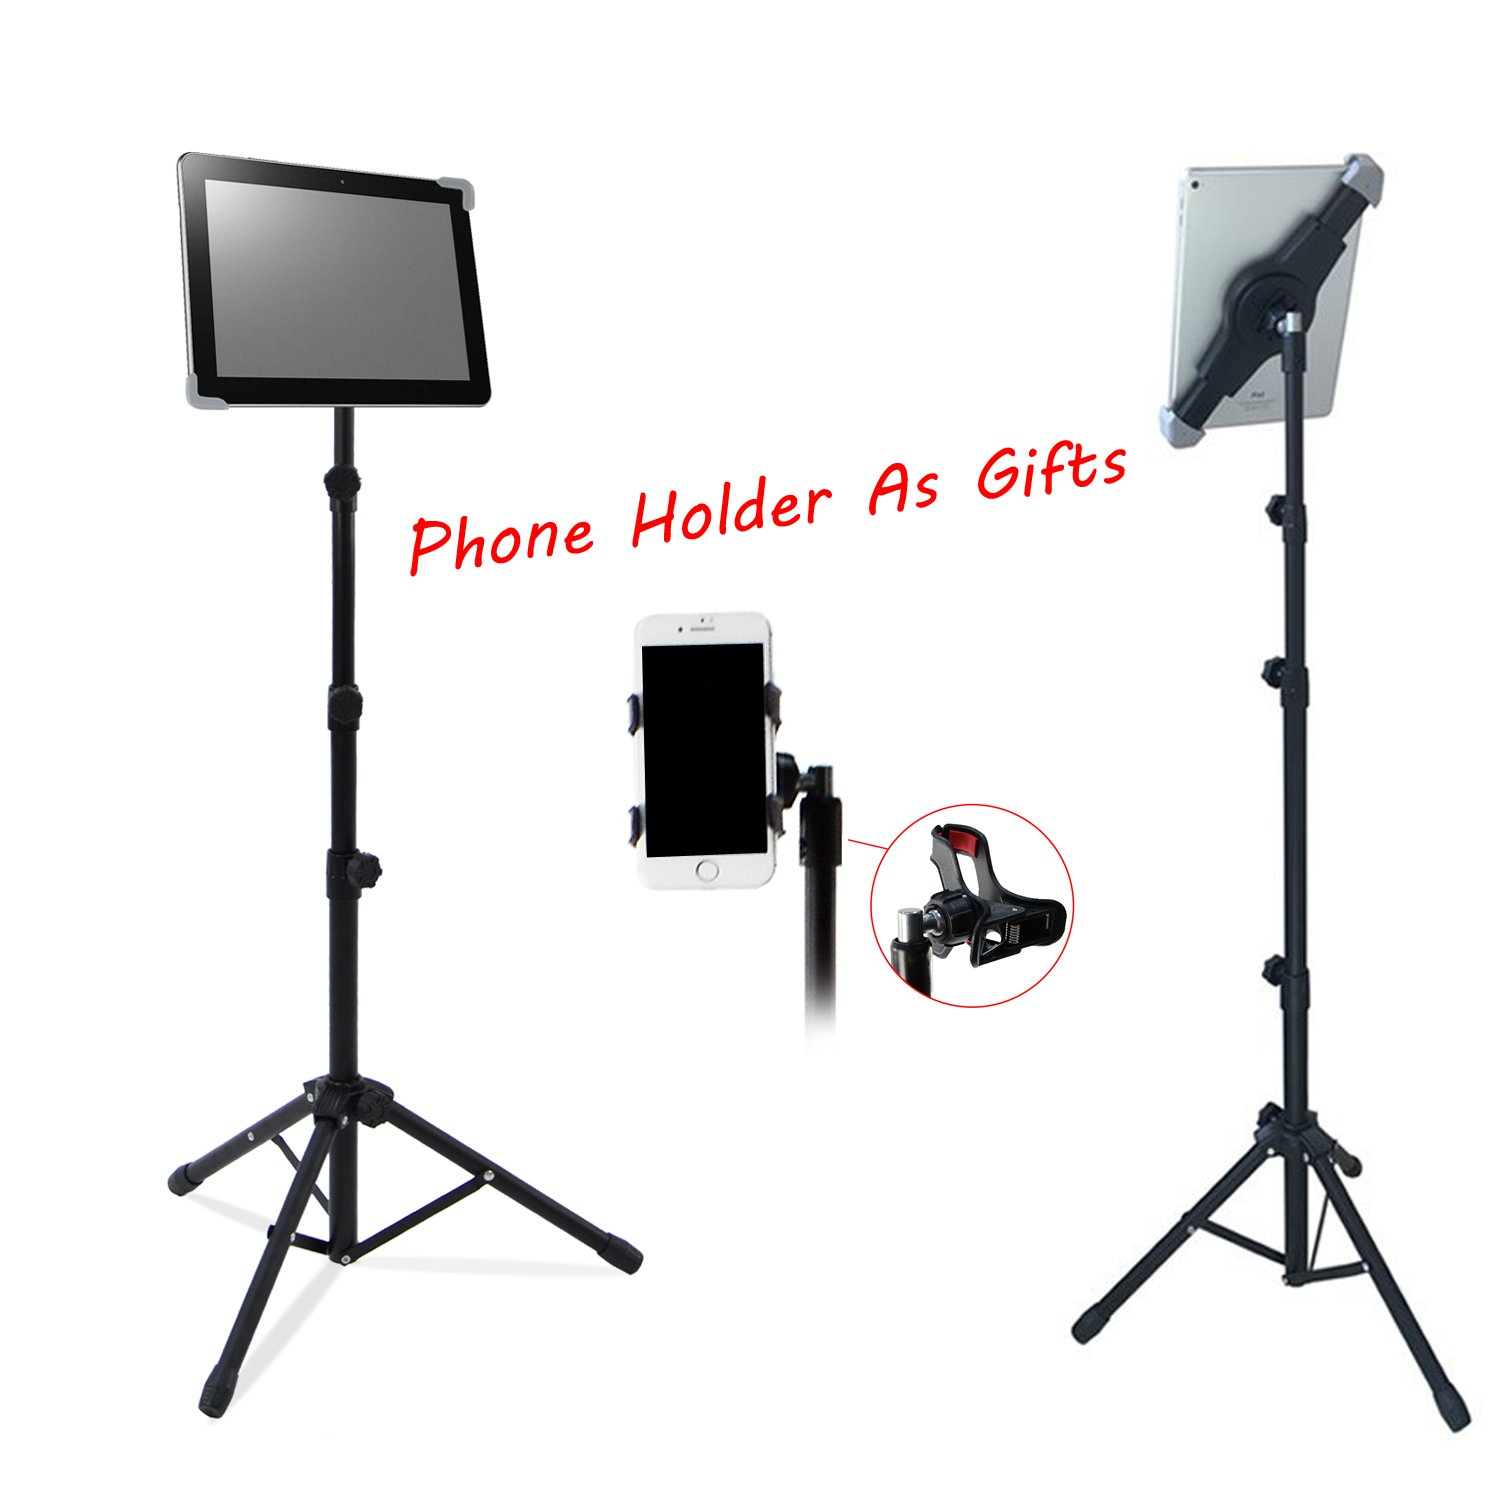 T-Sign Reinforced IPad Tripod Stand Mount - Foldable Floor Tablet Holder, Height Adjustable 360 Rotating Stand for iPad Mini/Air and More 7'' to 12'' Tablets, Carrying Case and Phone Holder As Gifts by T-SIGN (Image #3)